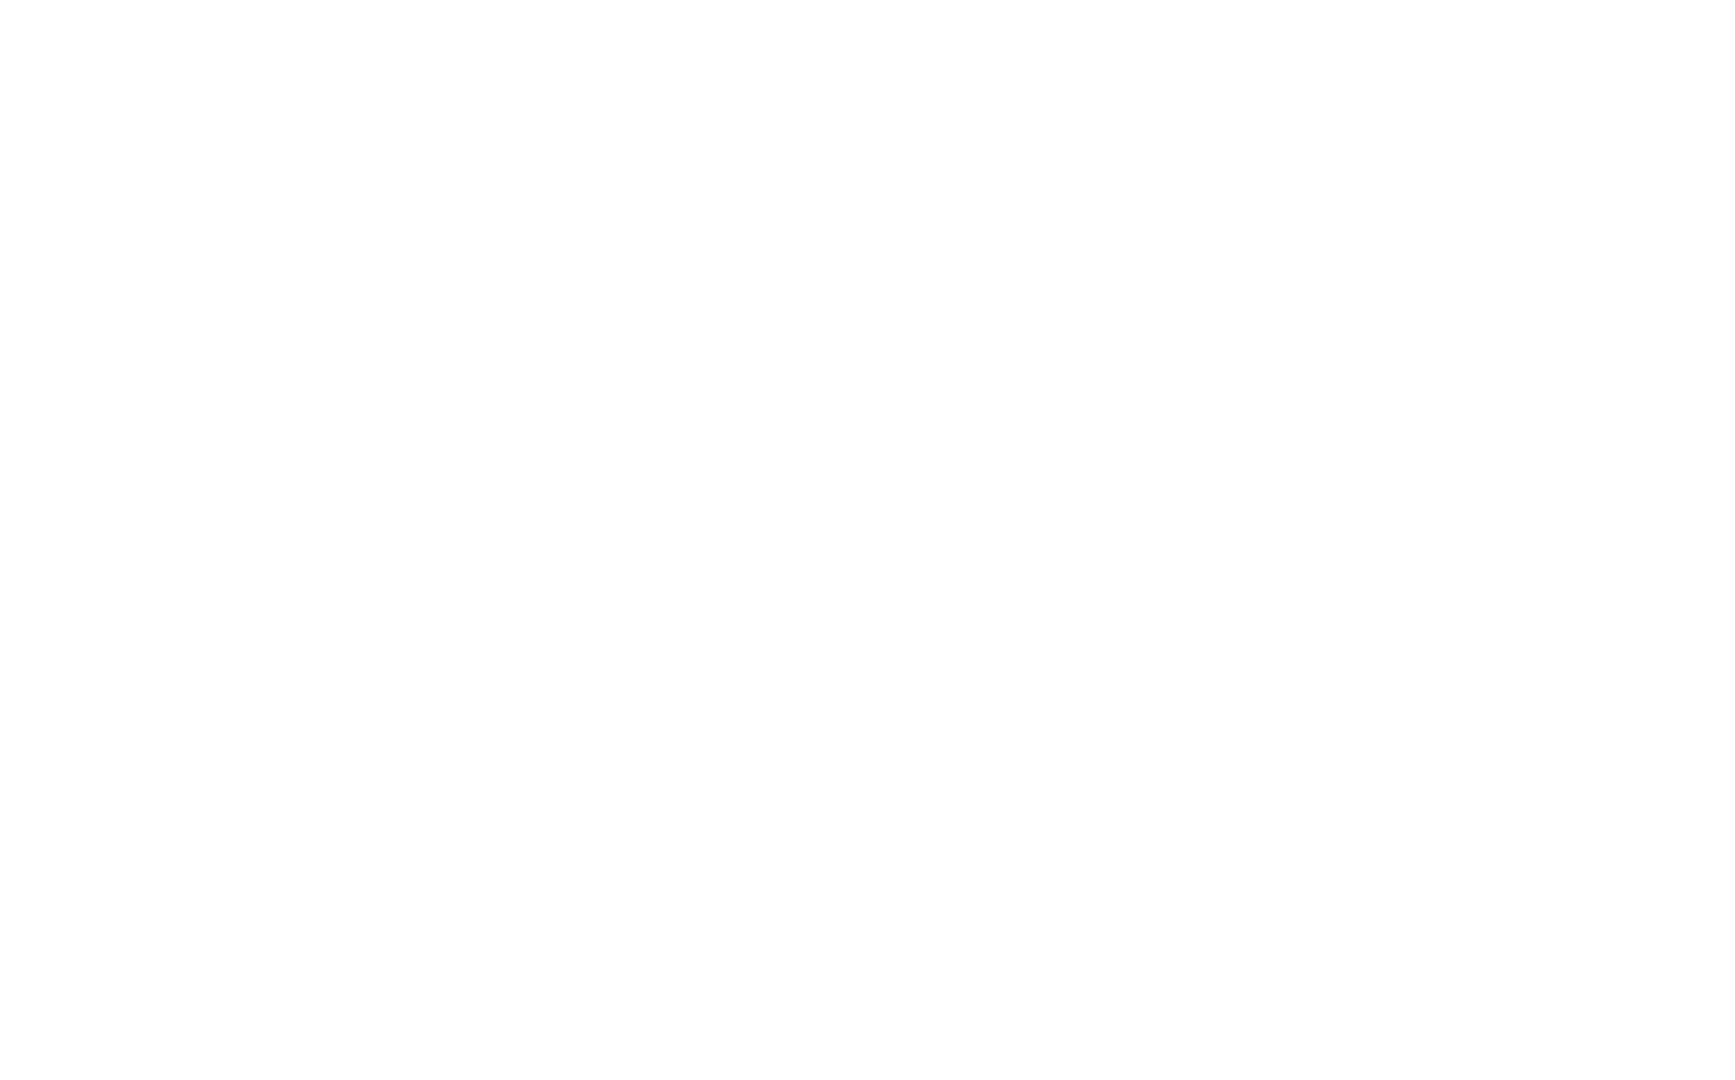 OFFICIAL SELECTION - Doc Sunback Film Fe